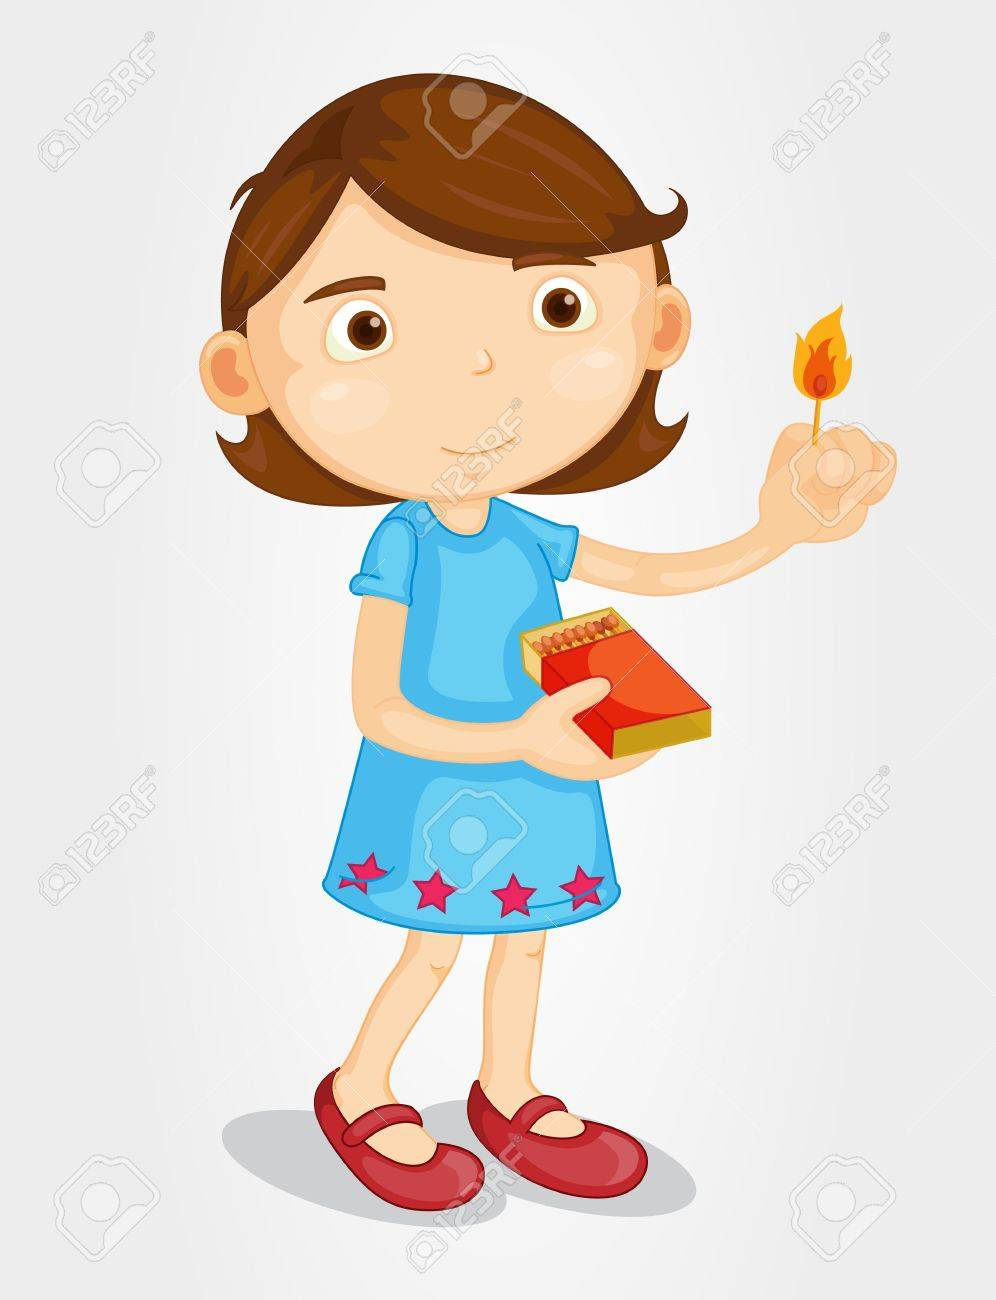 Illustration of a girl with matches Stock Vector - 13233373